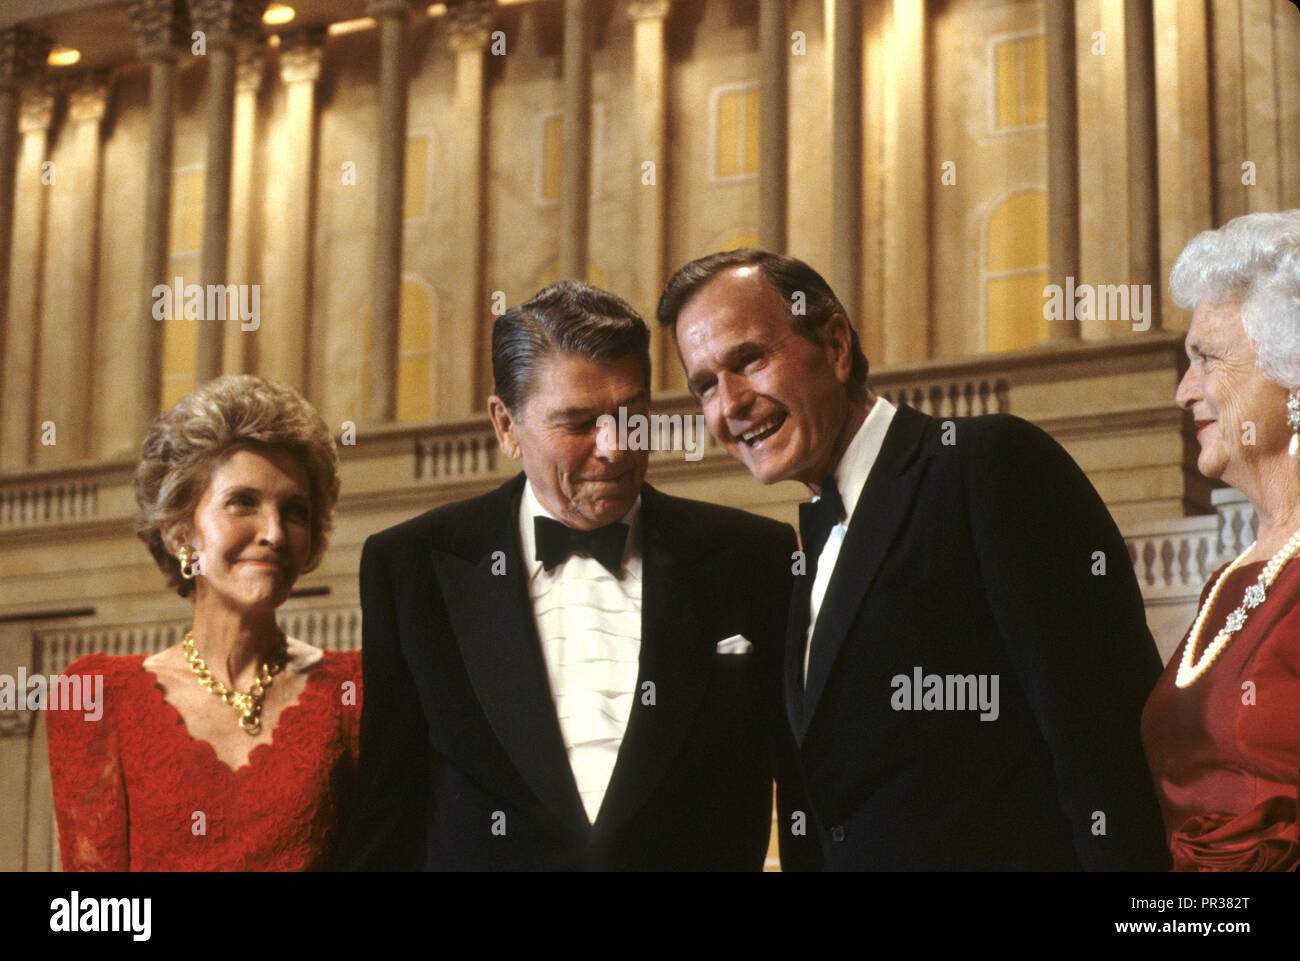 President Ronald Reagan and First Lady Nancy Reagan at a dinner in Washington where President Reagan endorses Vice President George HW Bush for president.  Photograph by Dennis Brack bb24 - Stock Image